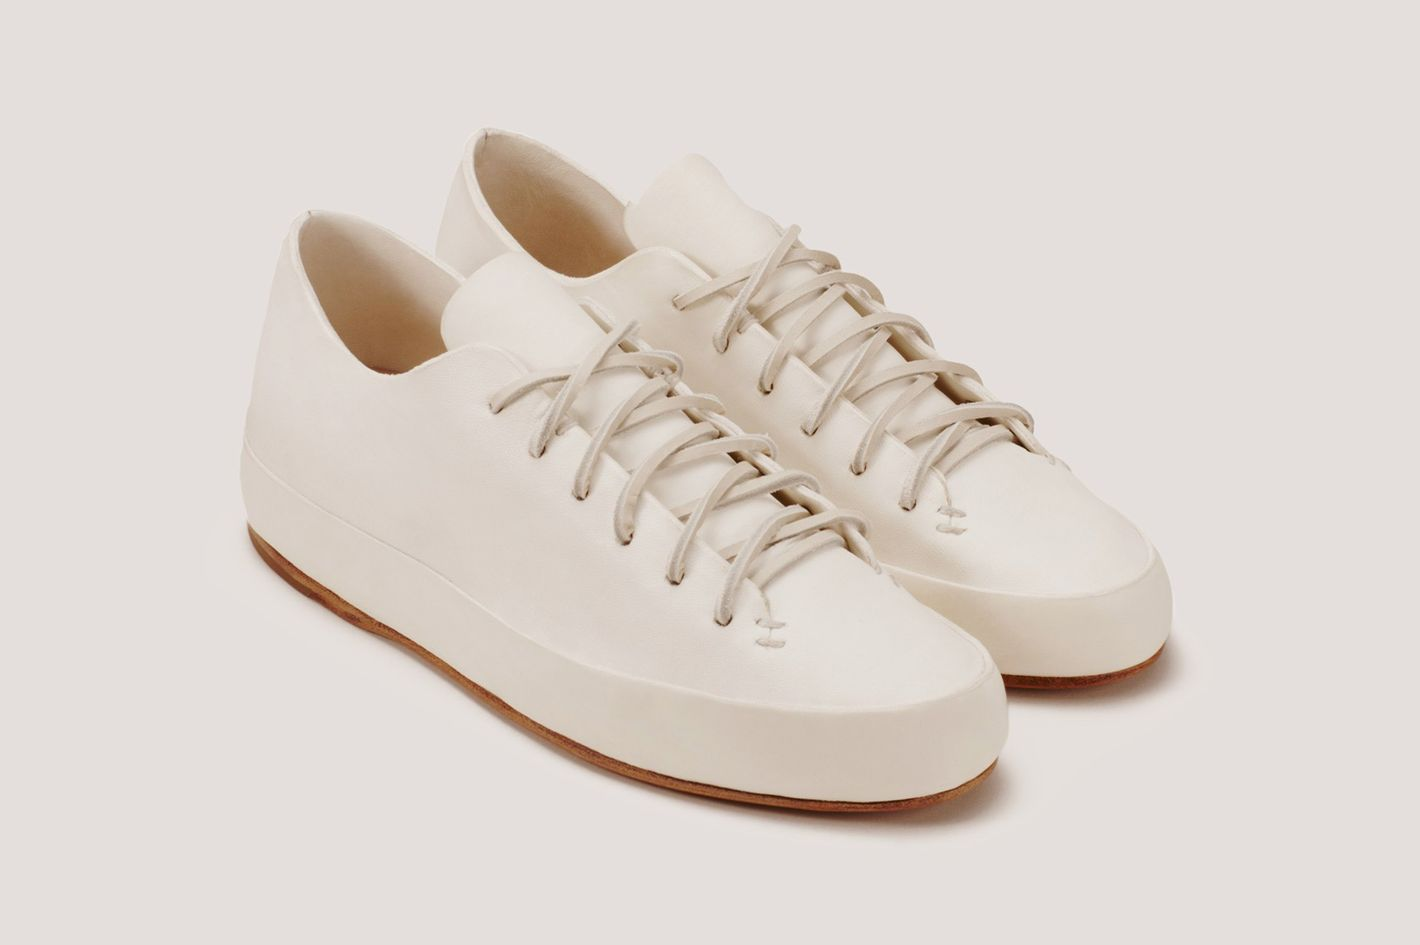 68a7e7a9c7d266 15 Best White Sneakers for Women 2018